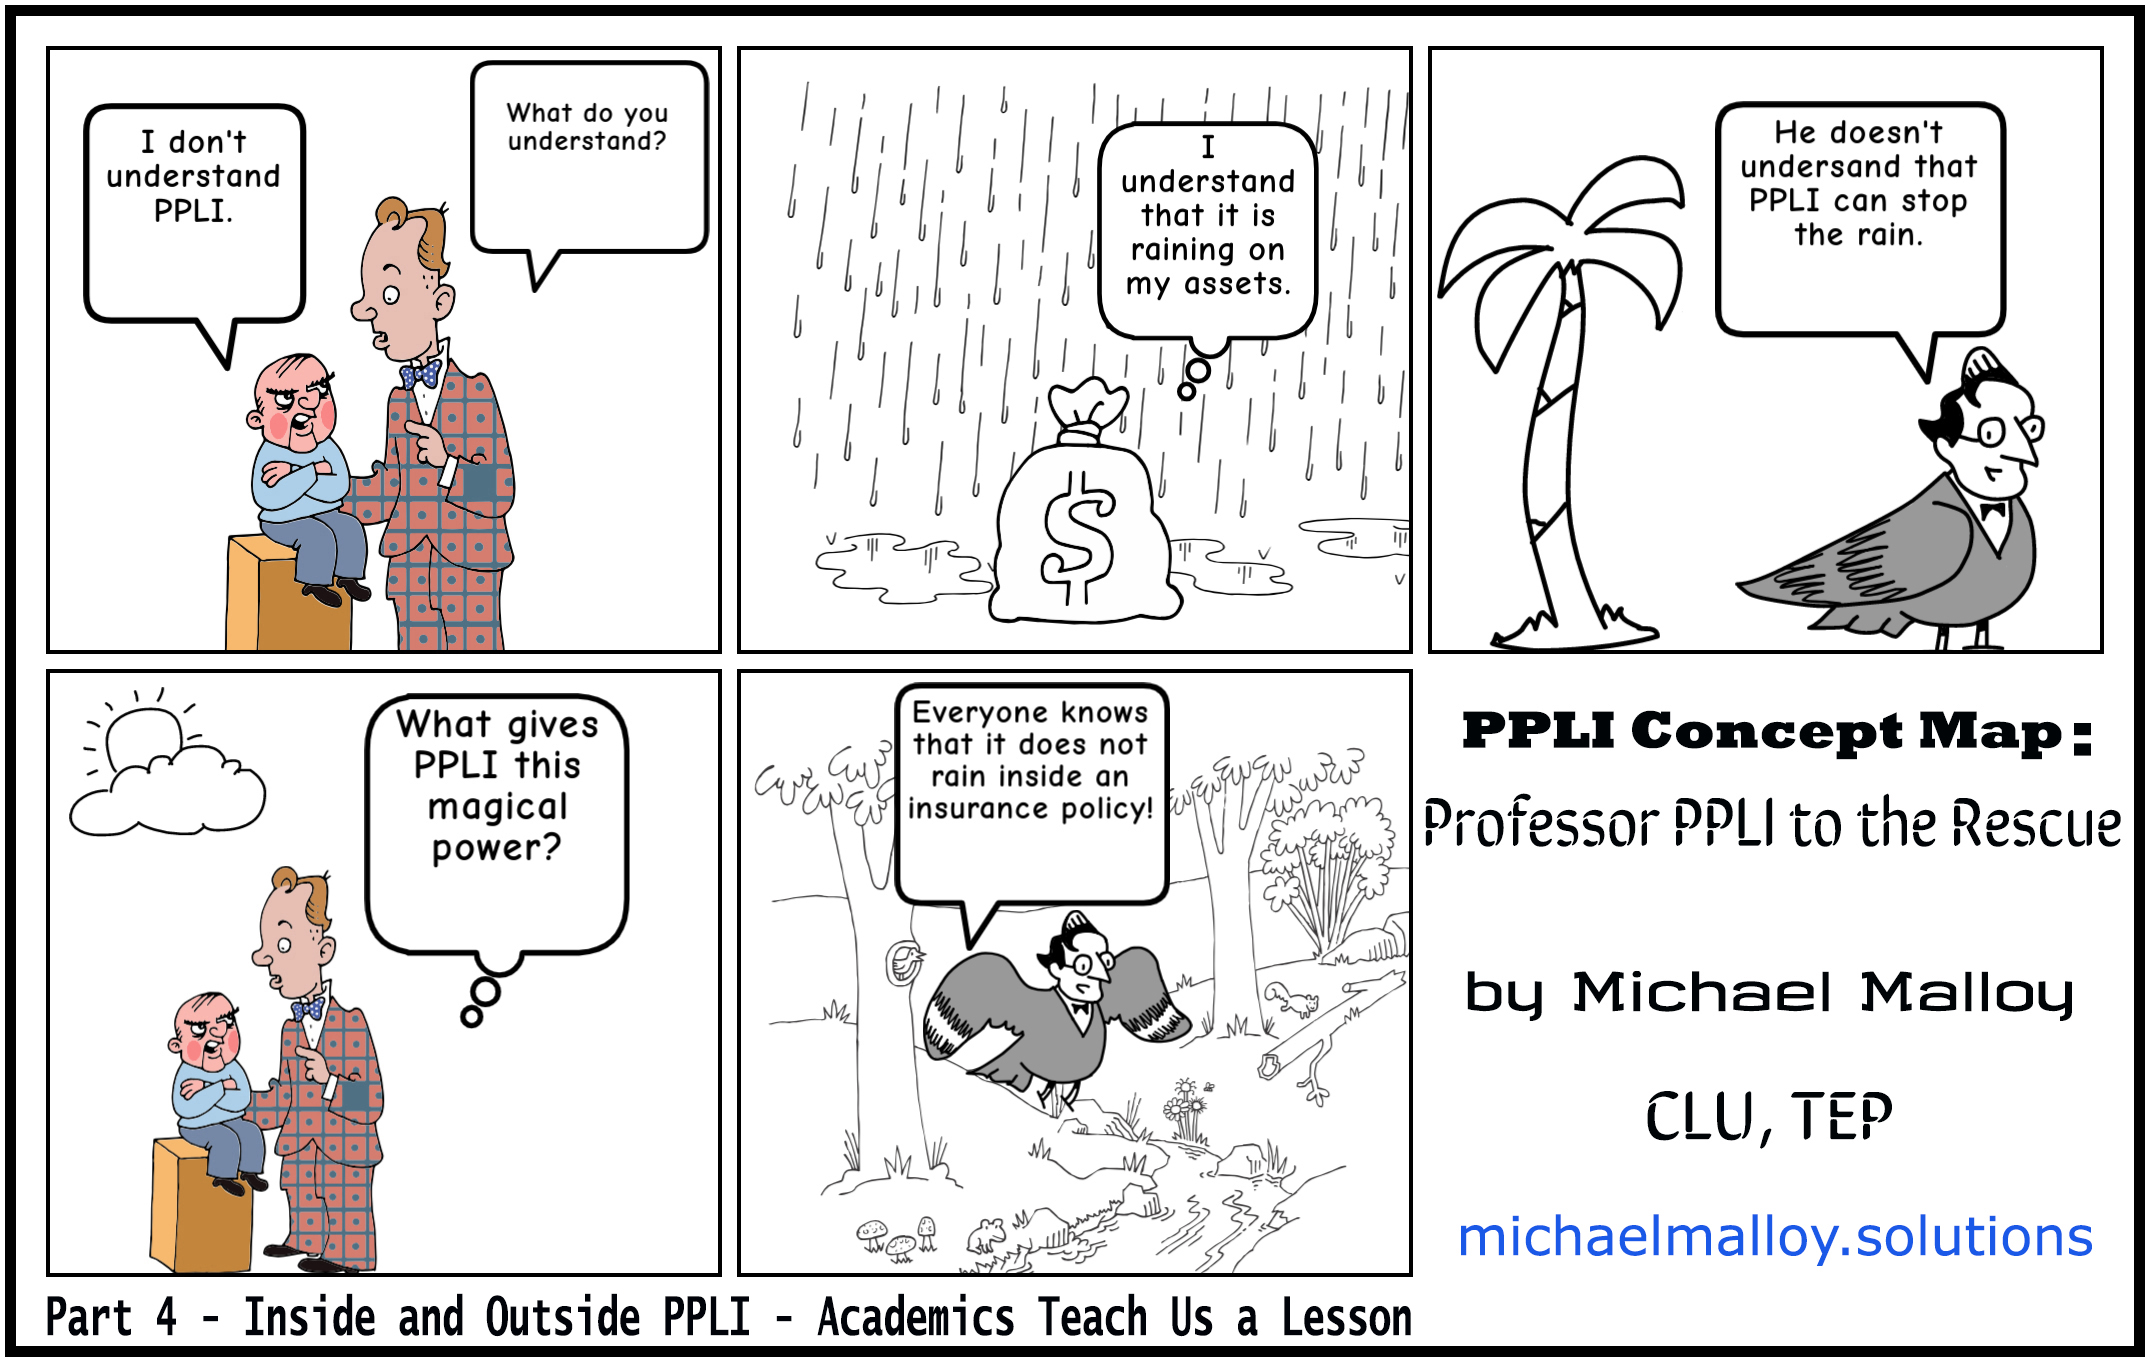 Part 4 - Inside and Outside PPLI - Academics Teach Us a Lesson